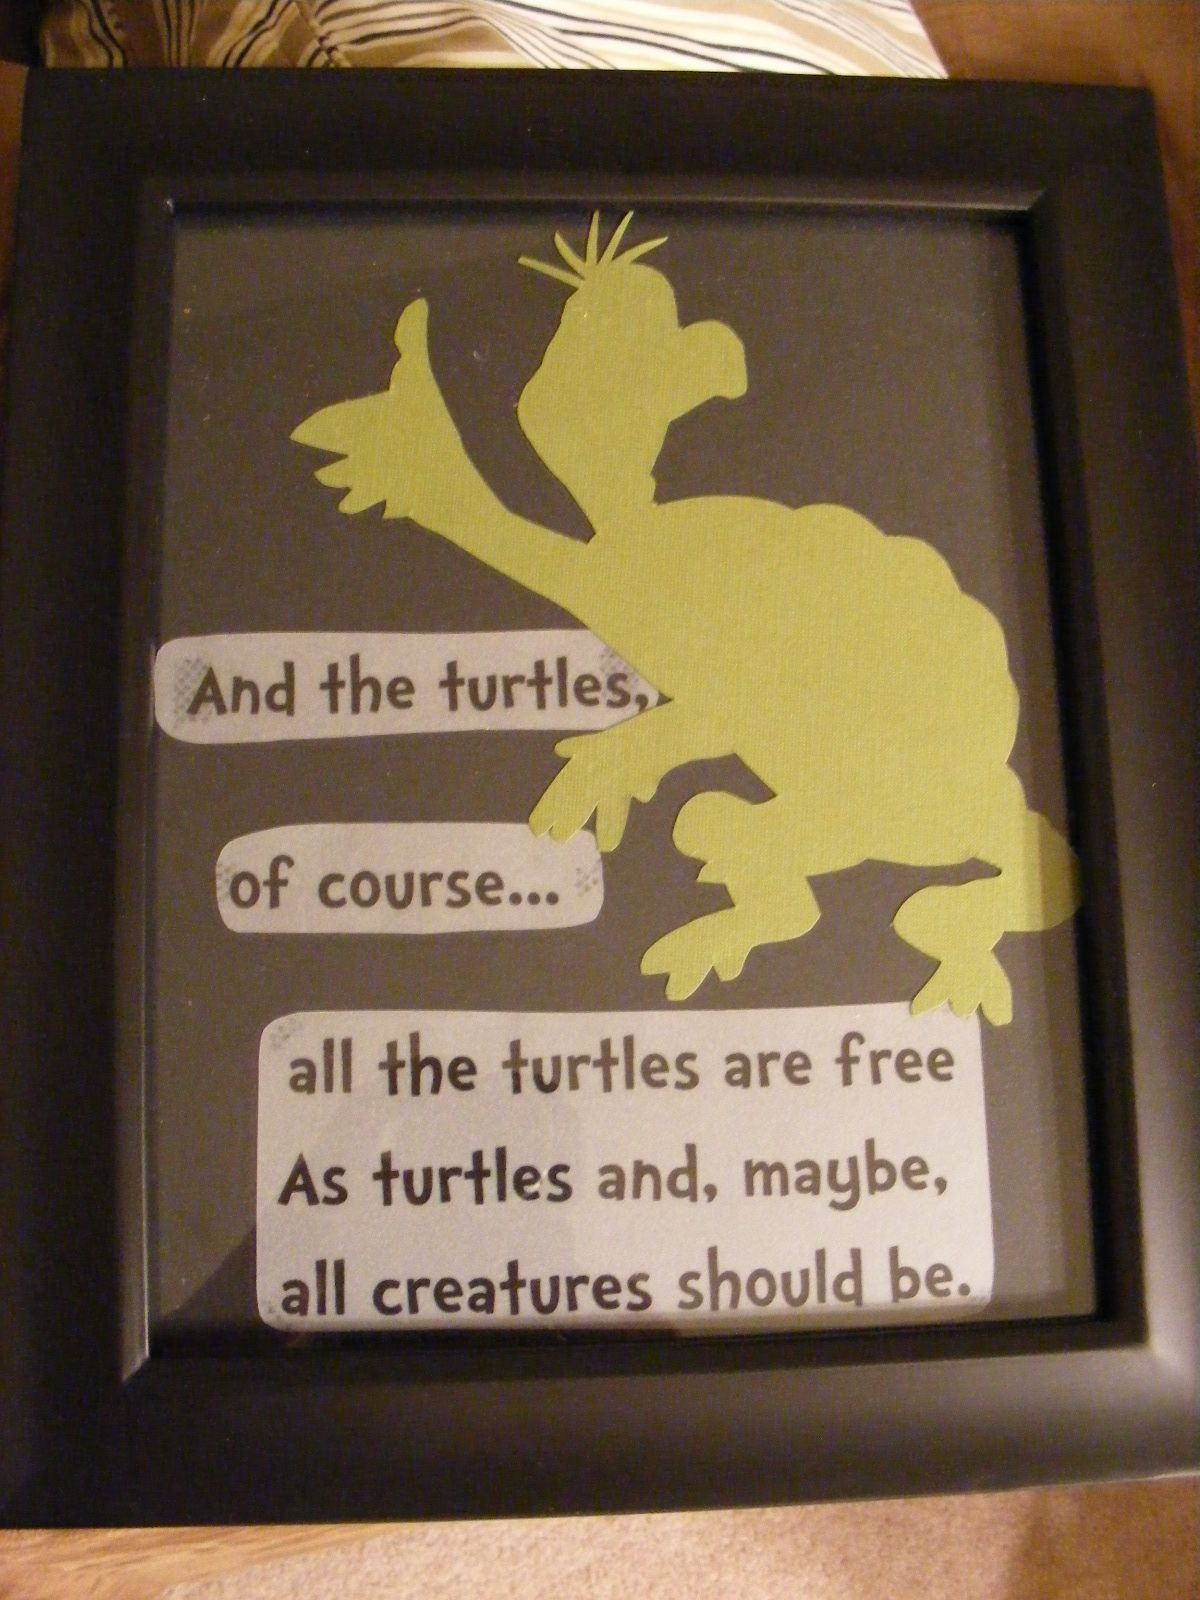 Yertle the Turtle artwork for the baby's room